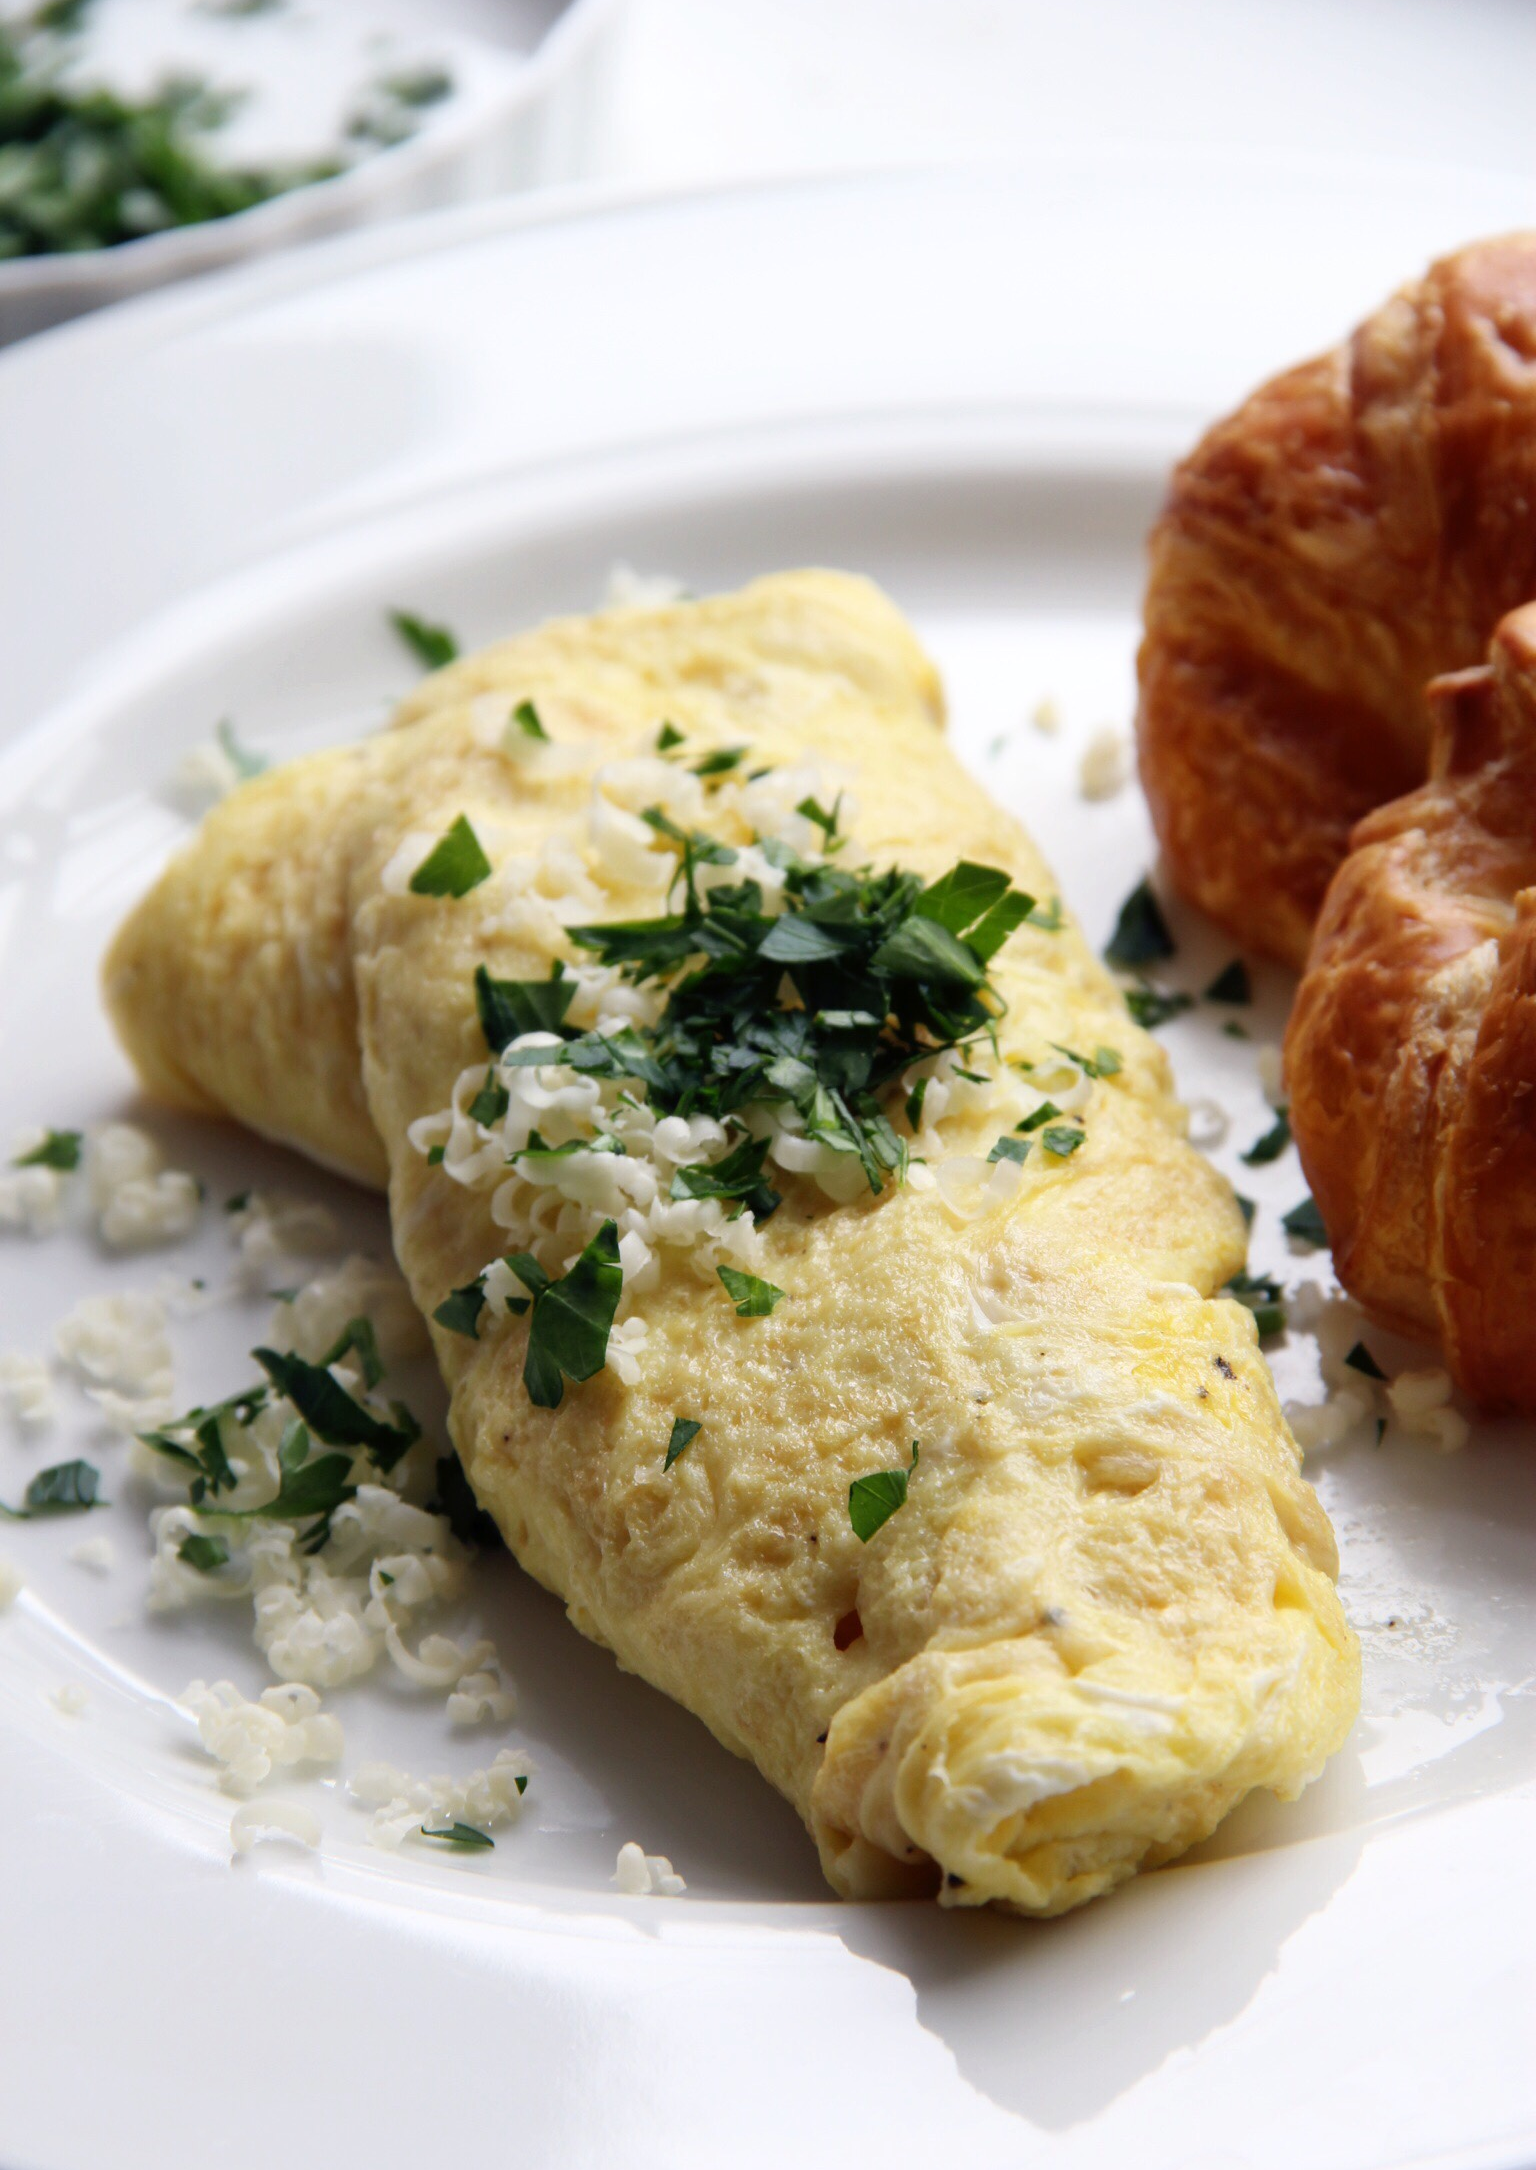 Making a perfect French omelette - The Pastiche